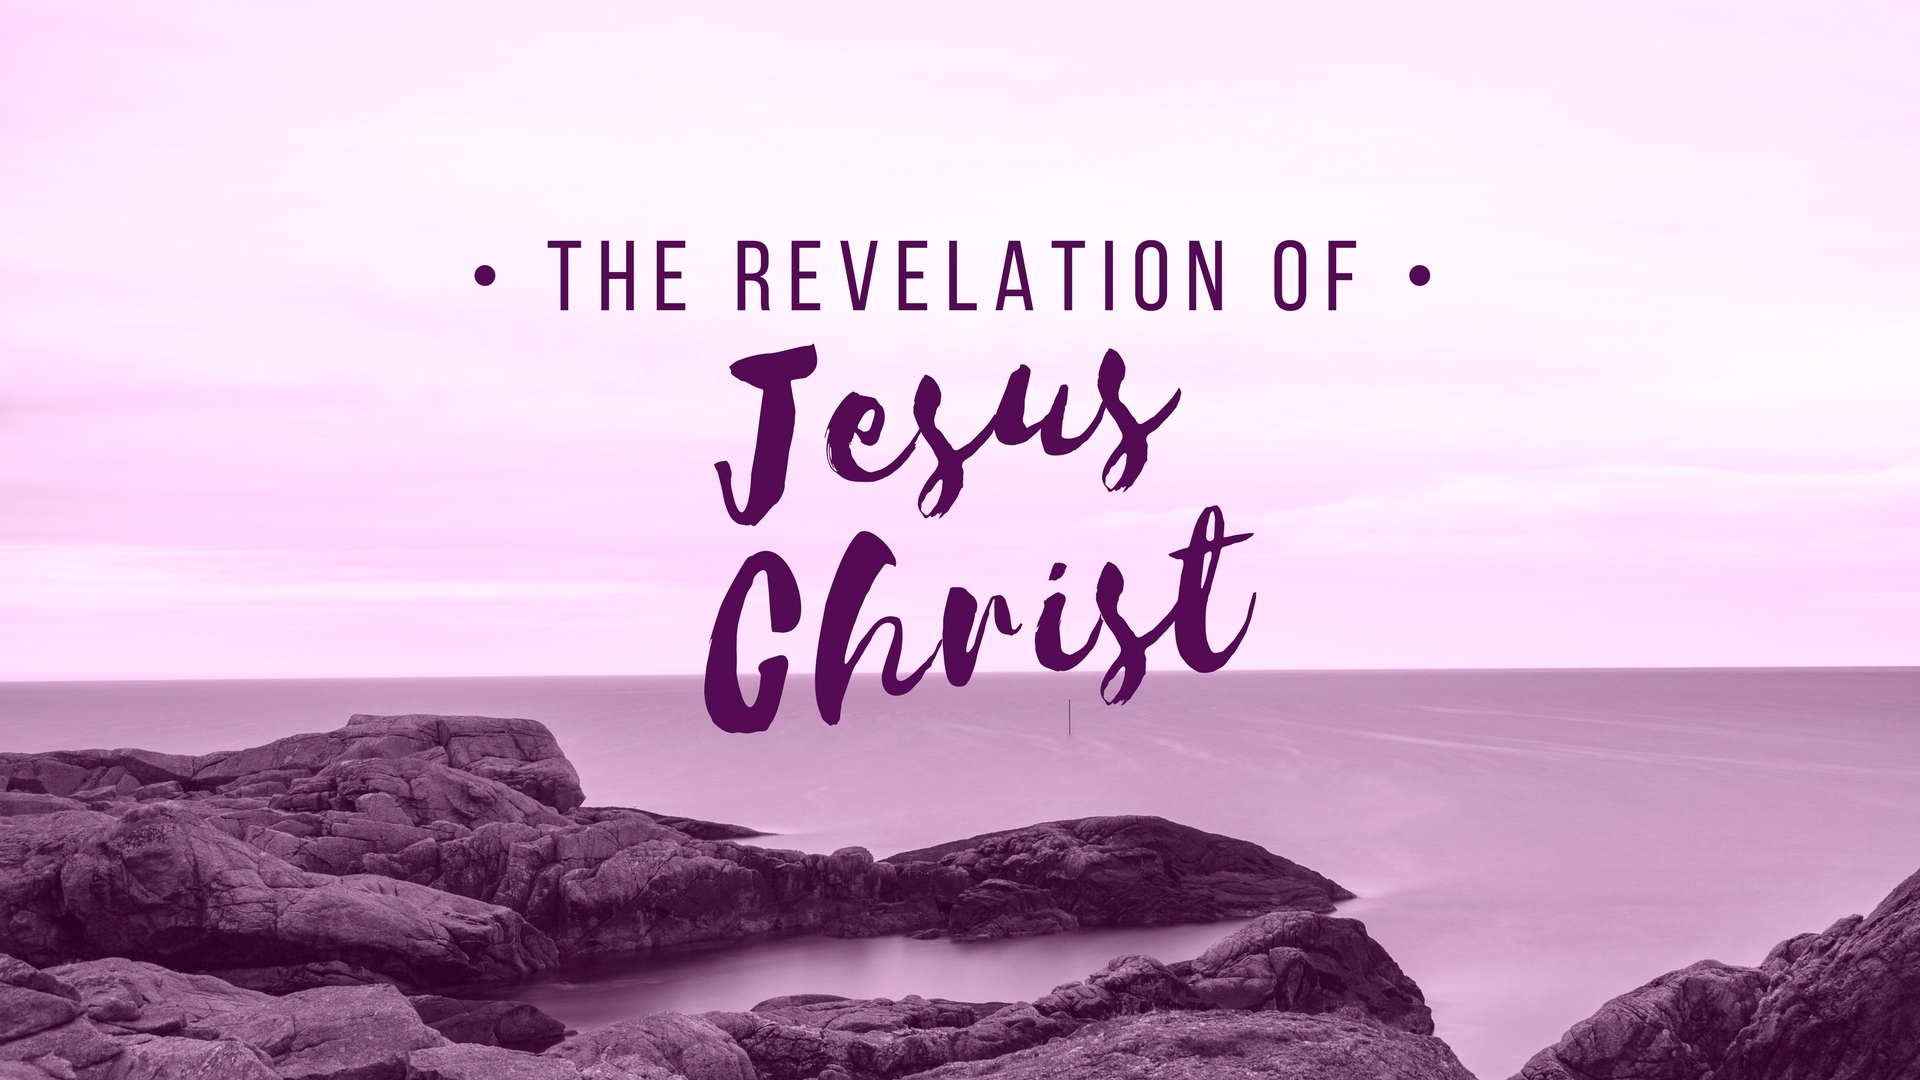 The Revelation of Jesus Christ